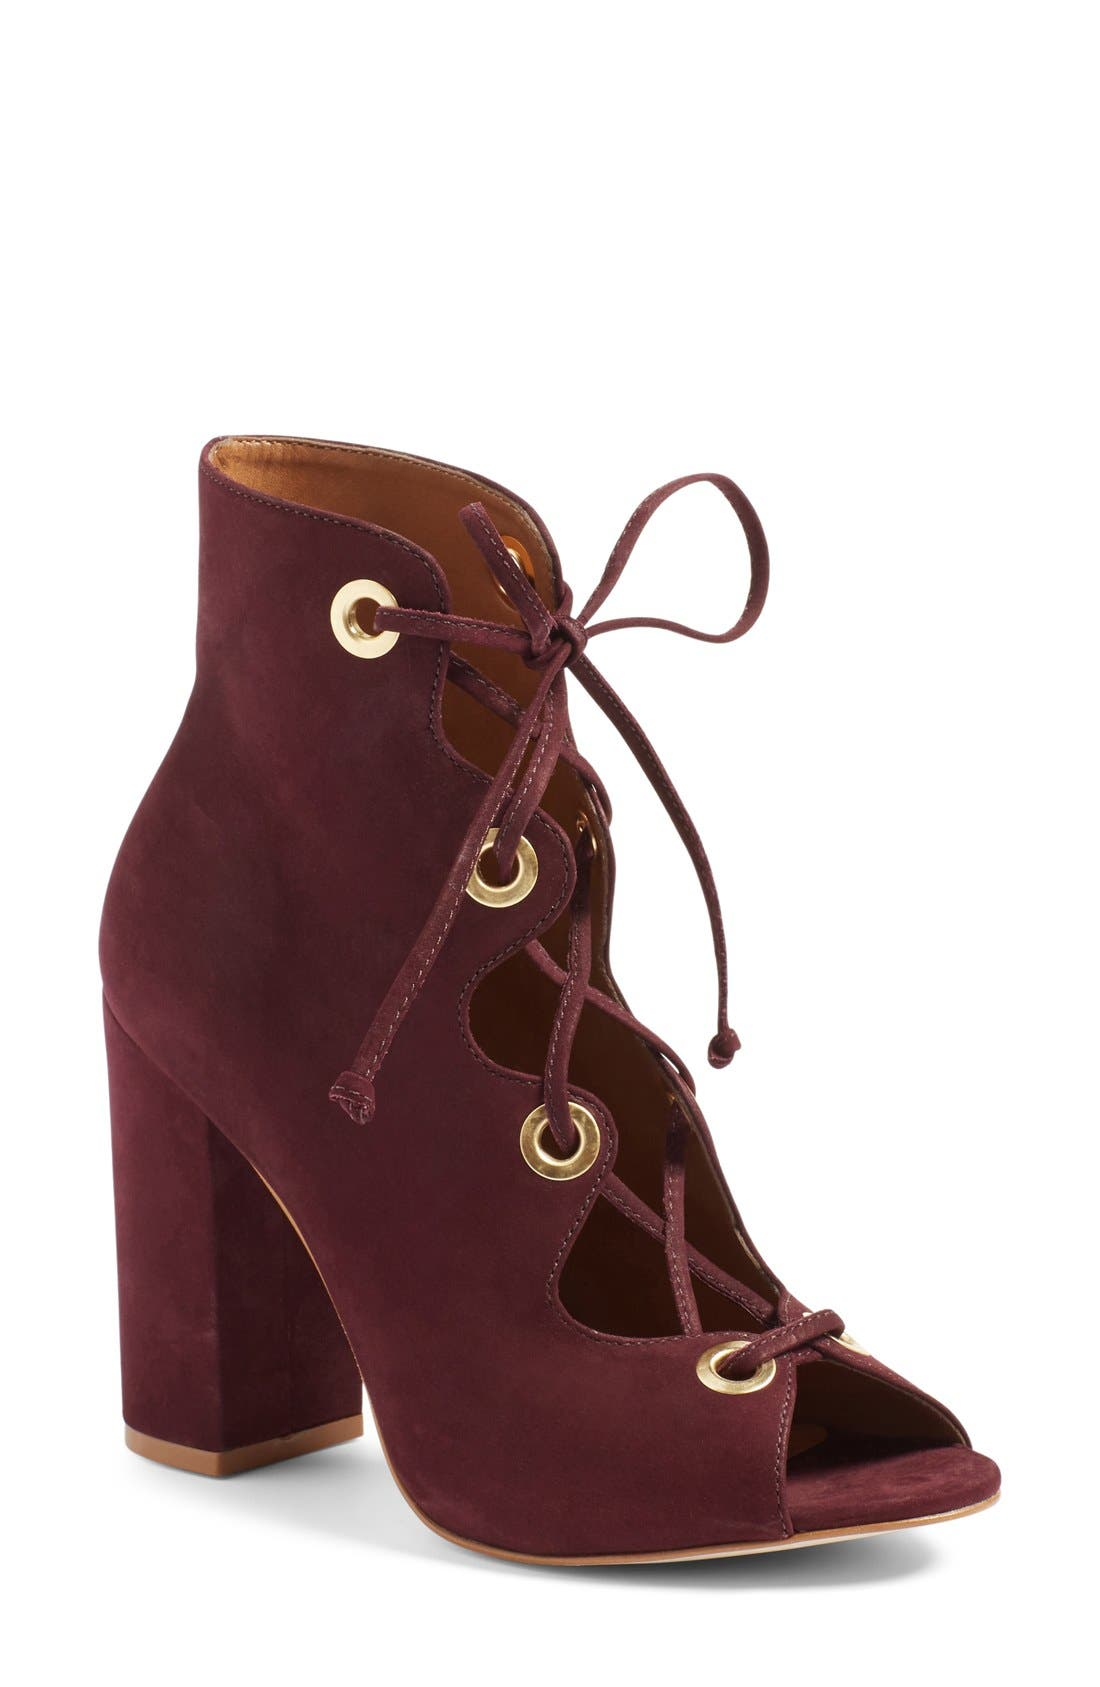 Alternate Image 1 Selected - Steve Madden 'Carusso' Lace-Up Peep Toe Bootie (Women)